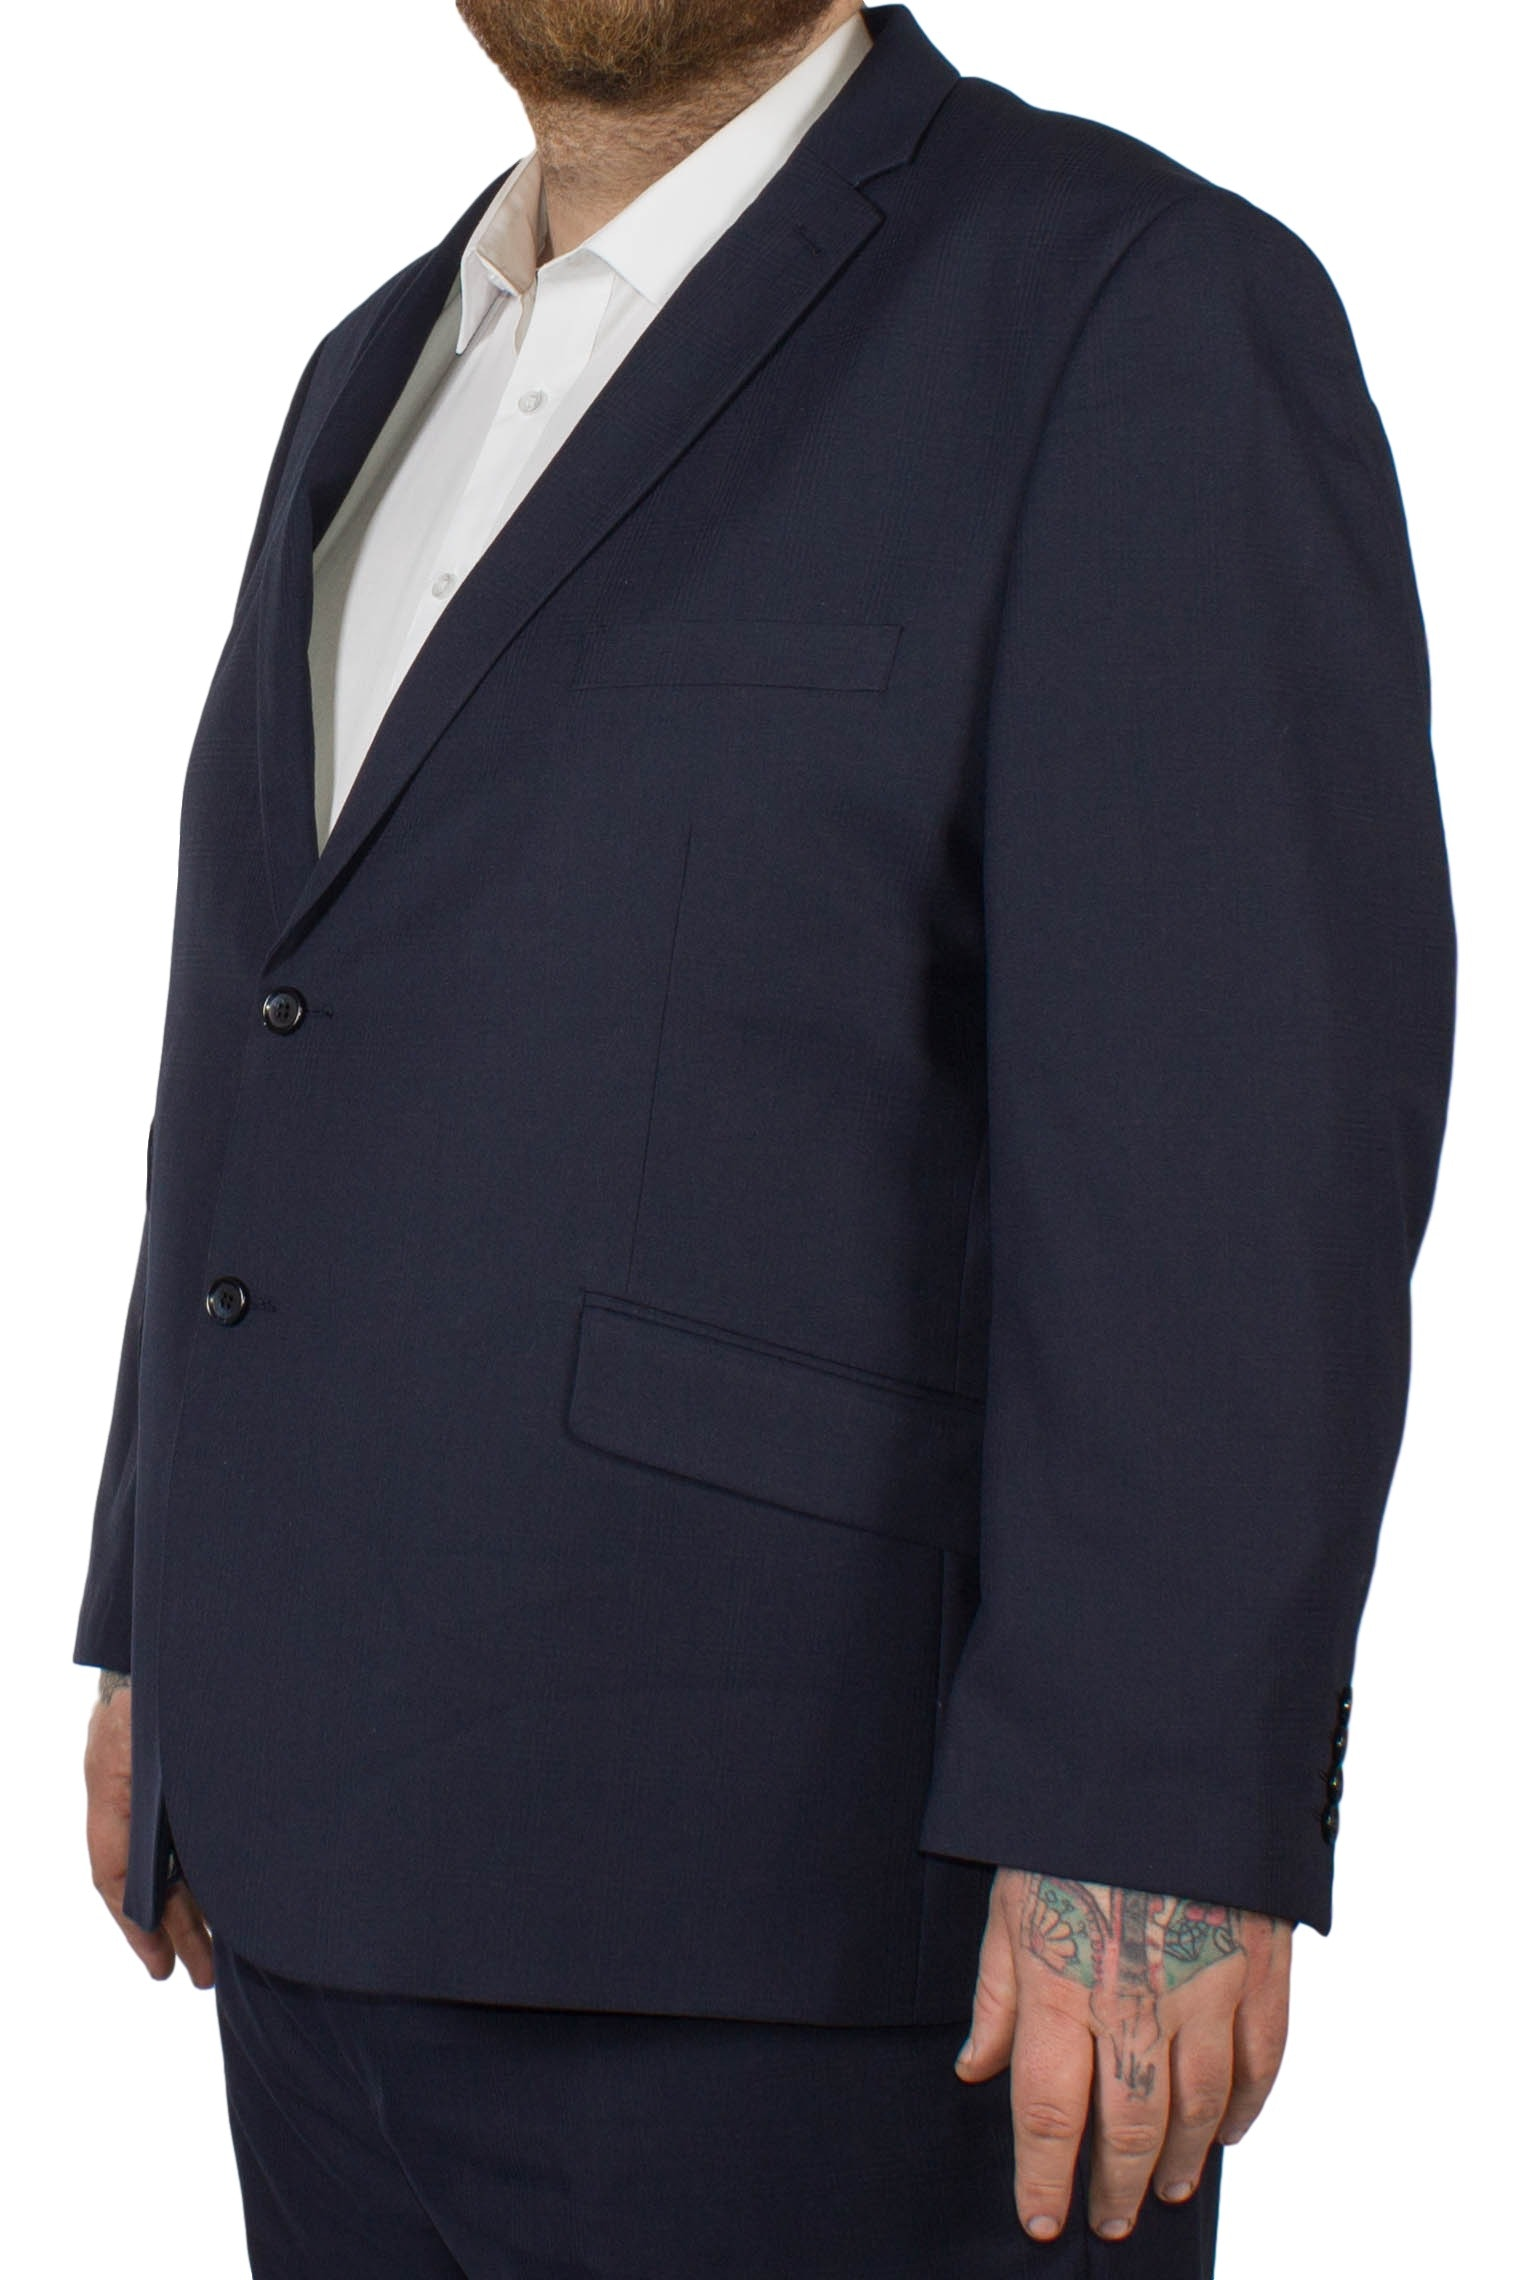 McCarthy Dante Check Jacket Navy